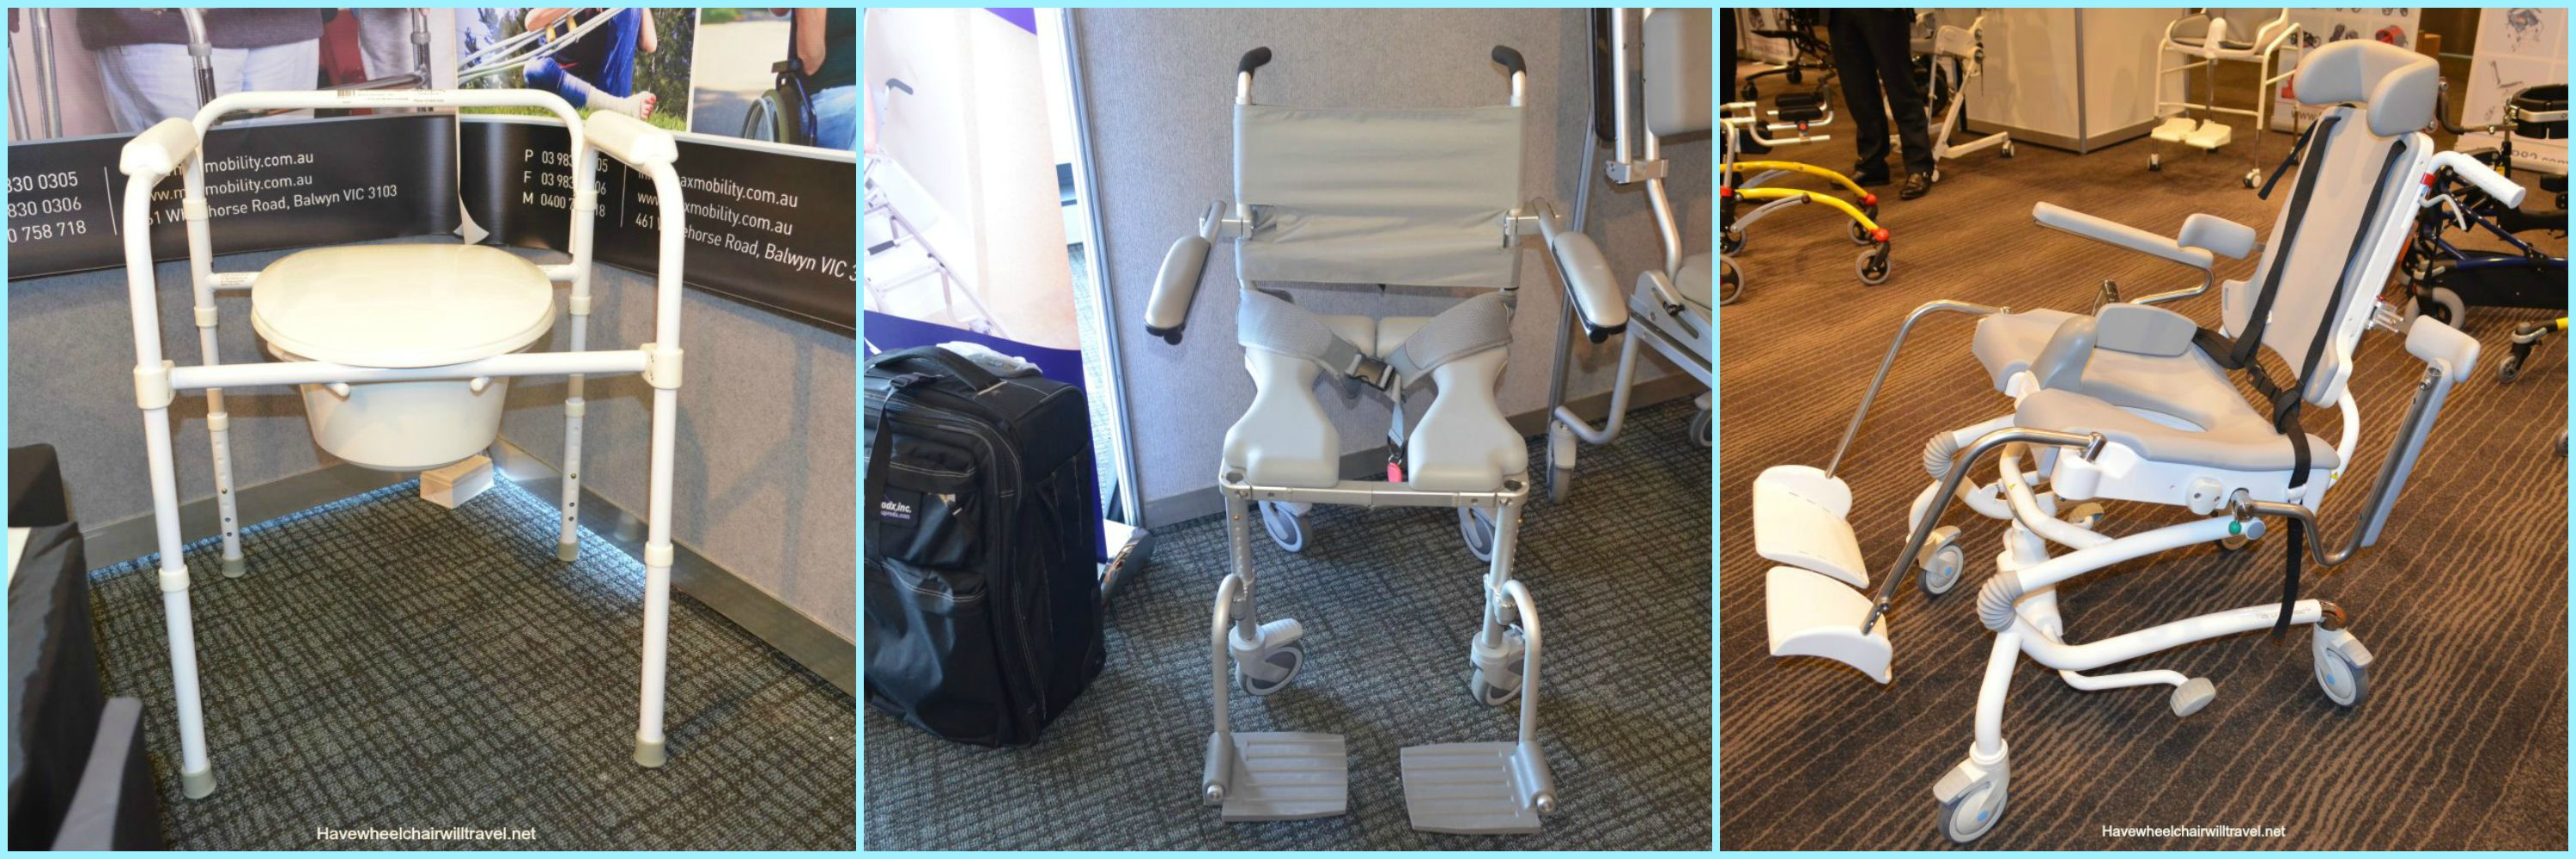 wheelchair hire bali toys r us nursing chair when you ve gotta go on the have will travel port a loo